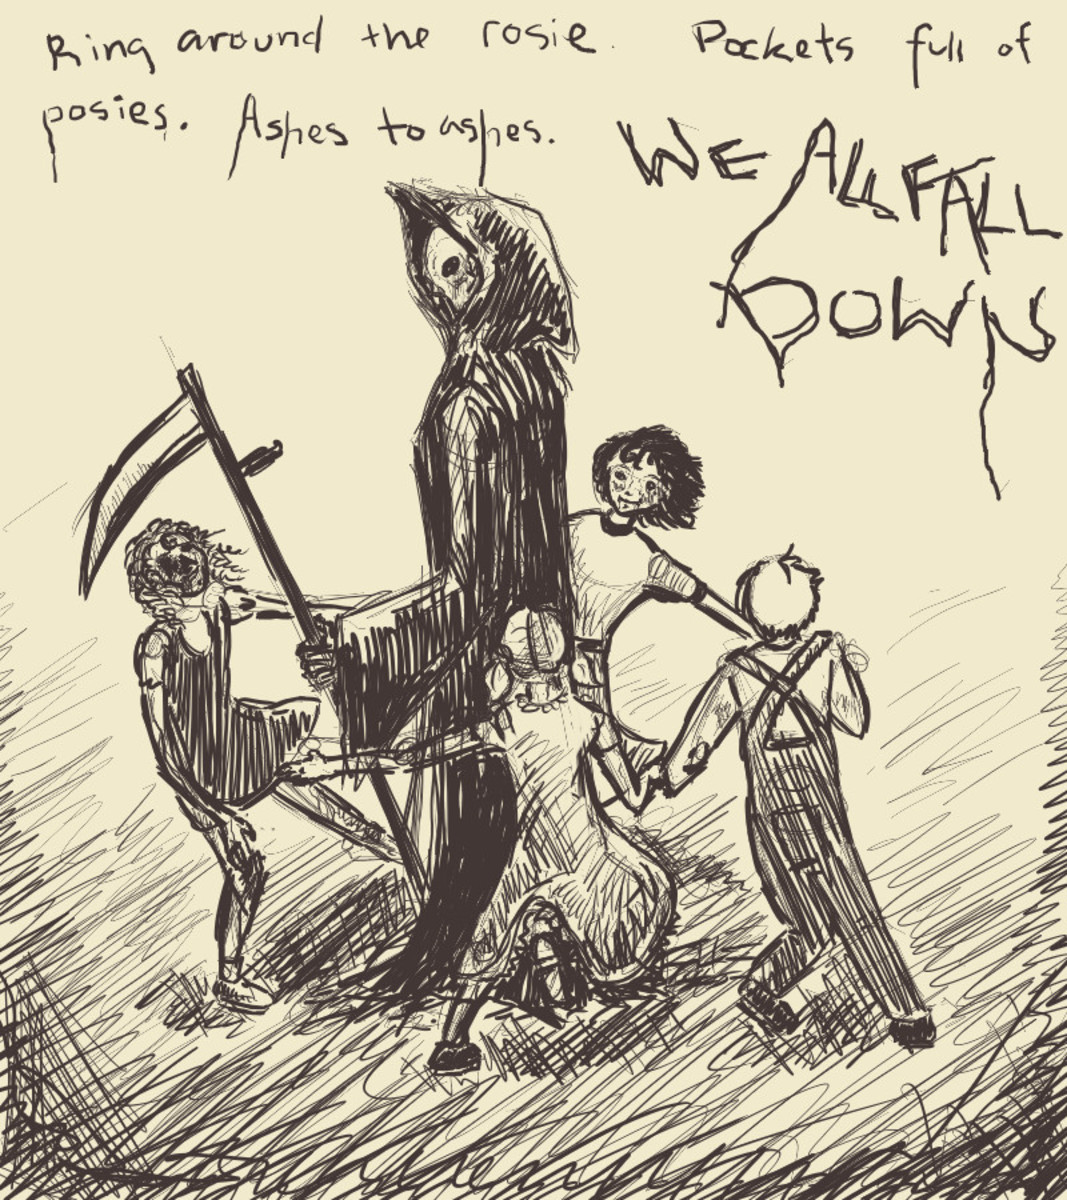 This children's rhyme was no game and is associated closely with the Black Death!